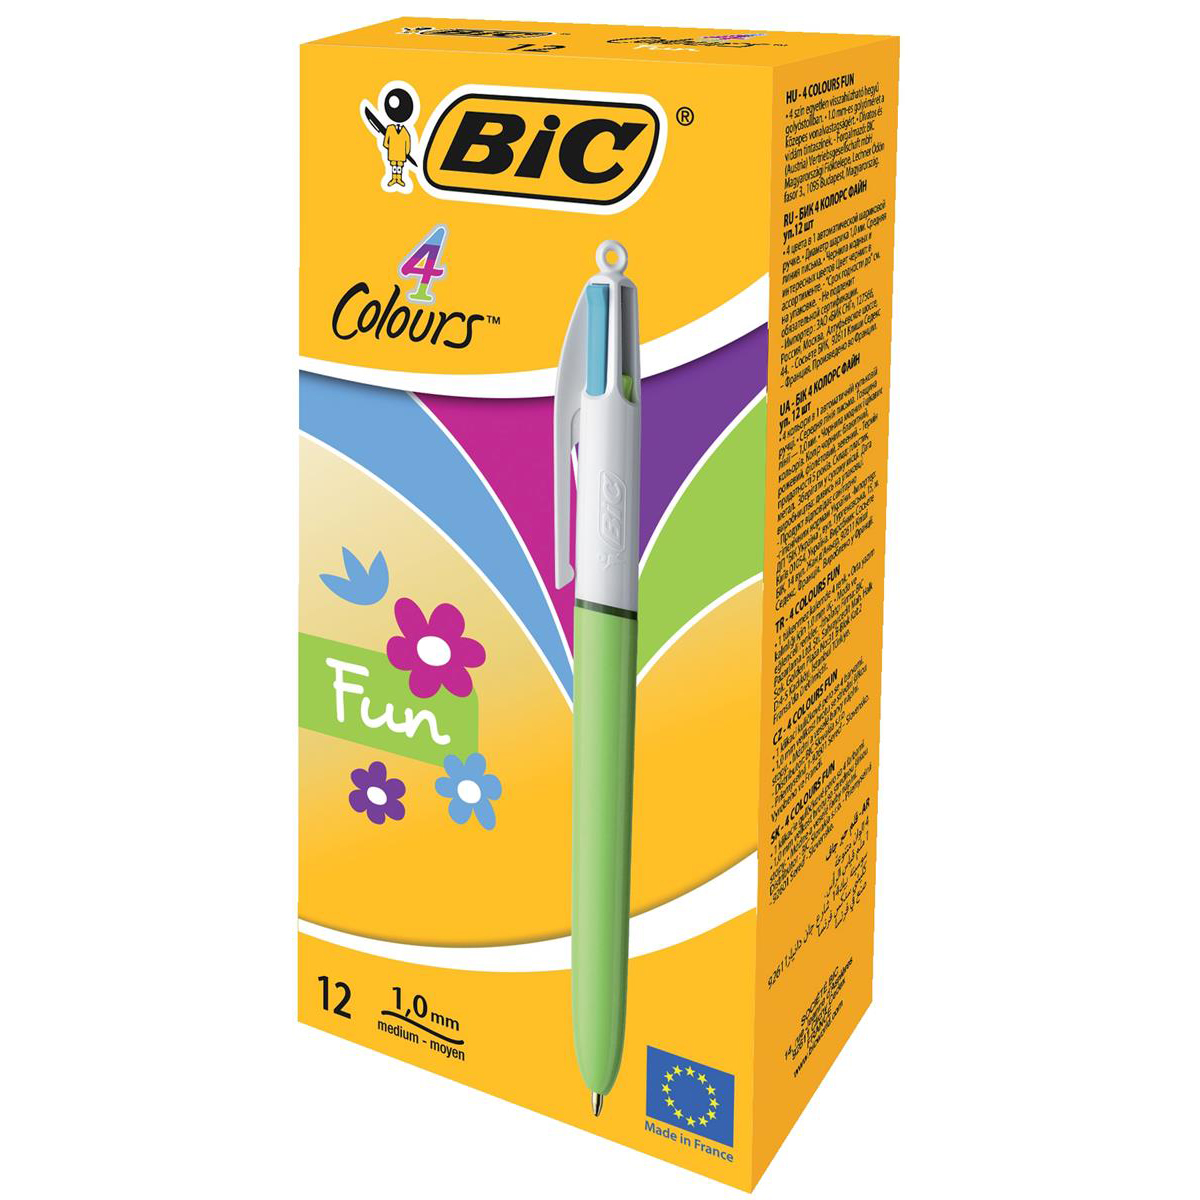 Bic 4-Colour Fun Ball Pen 1.0mm Tip 0.32mm Line Pink Purple Turquoise Lime Green Ref 887777 [Pack 12]